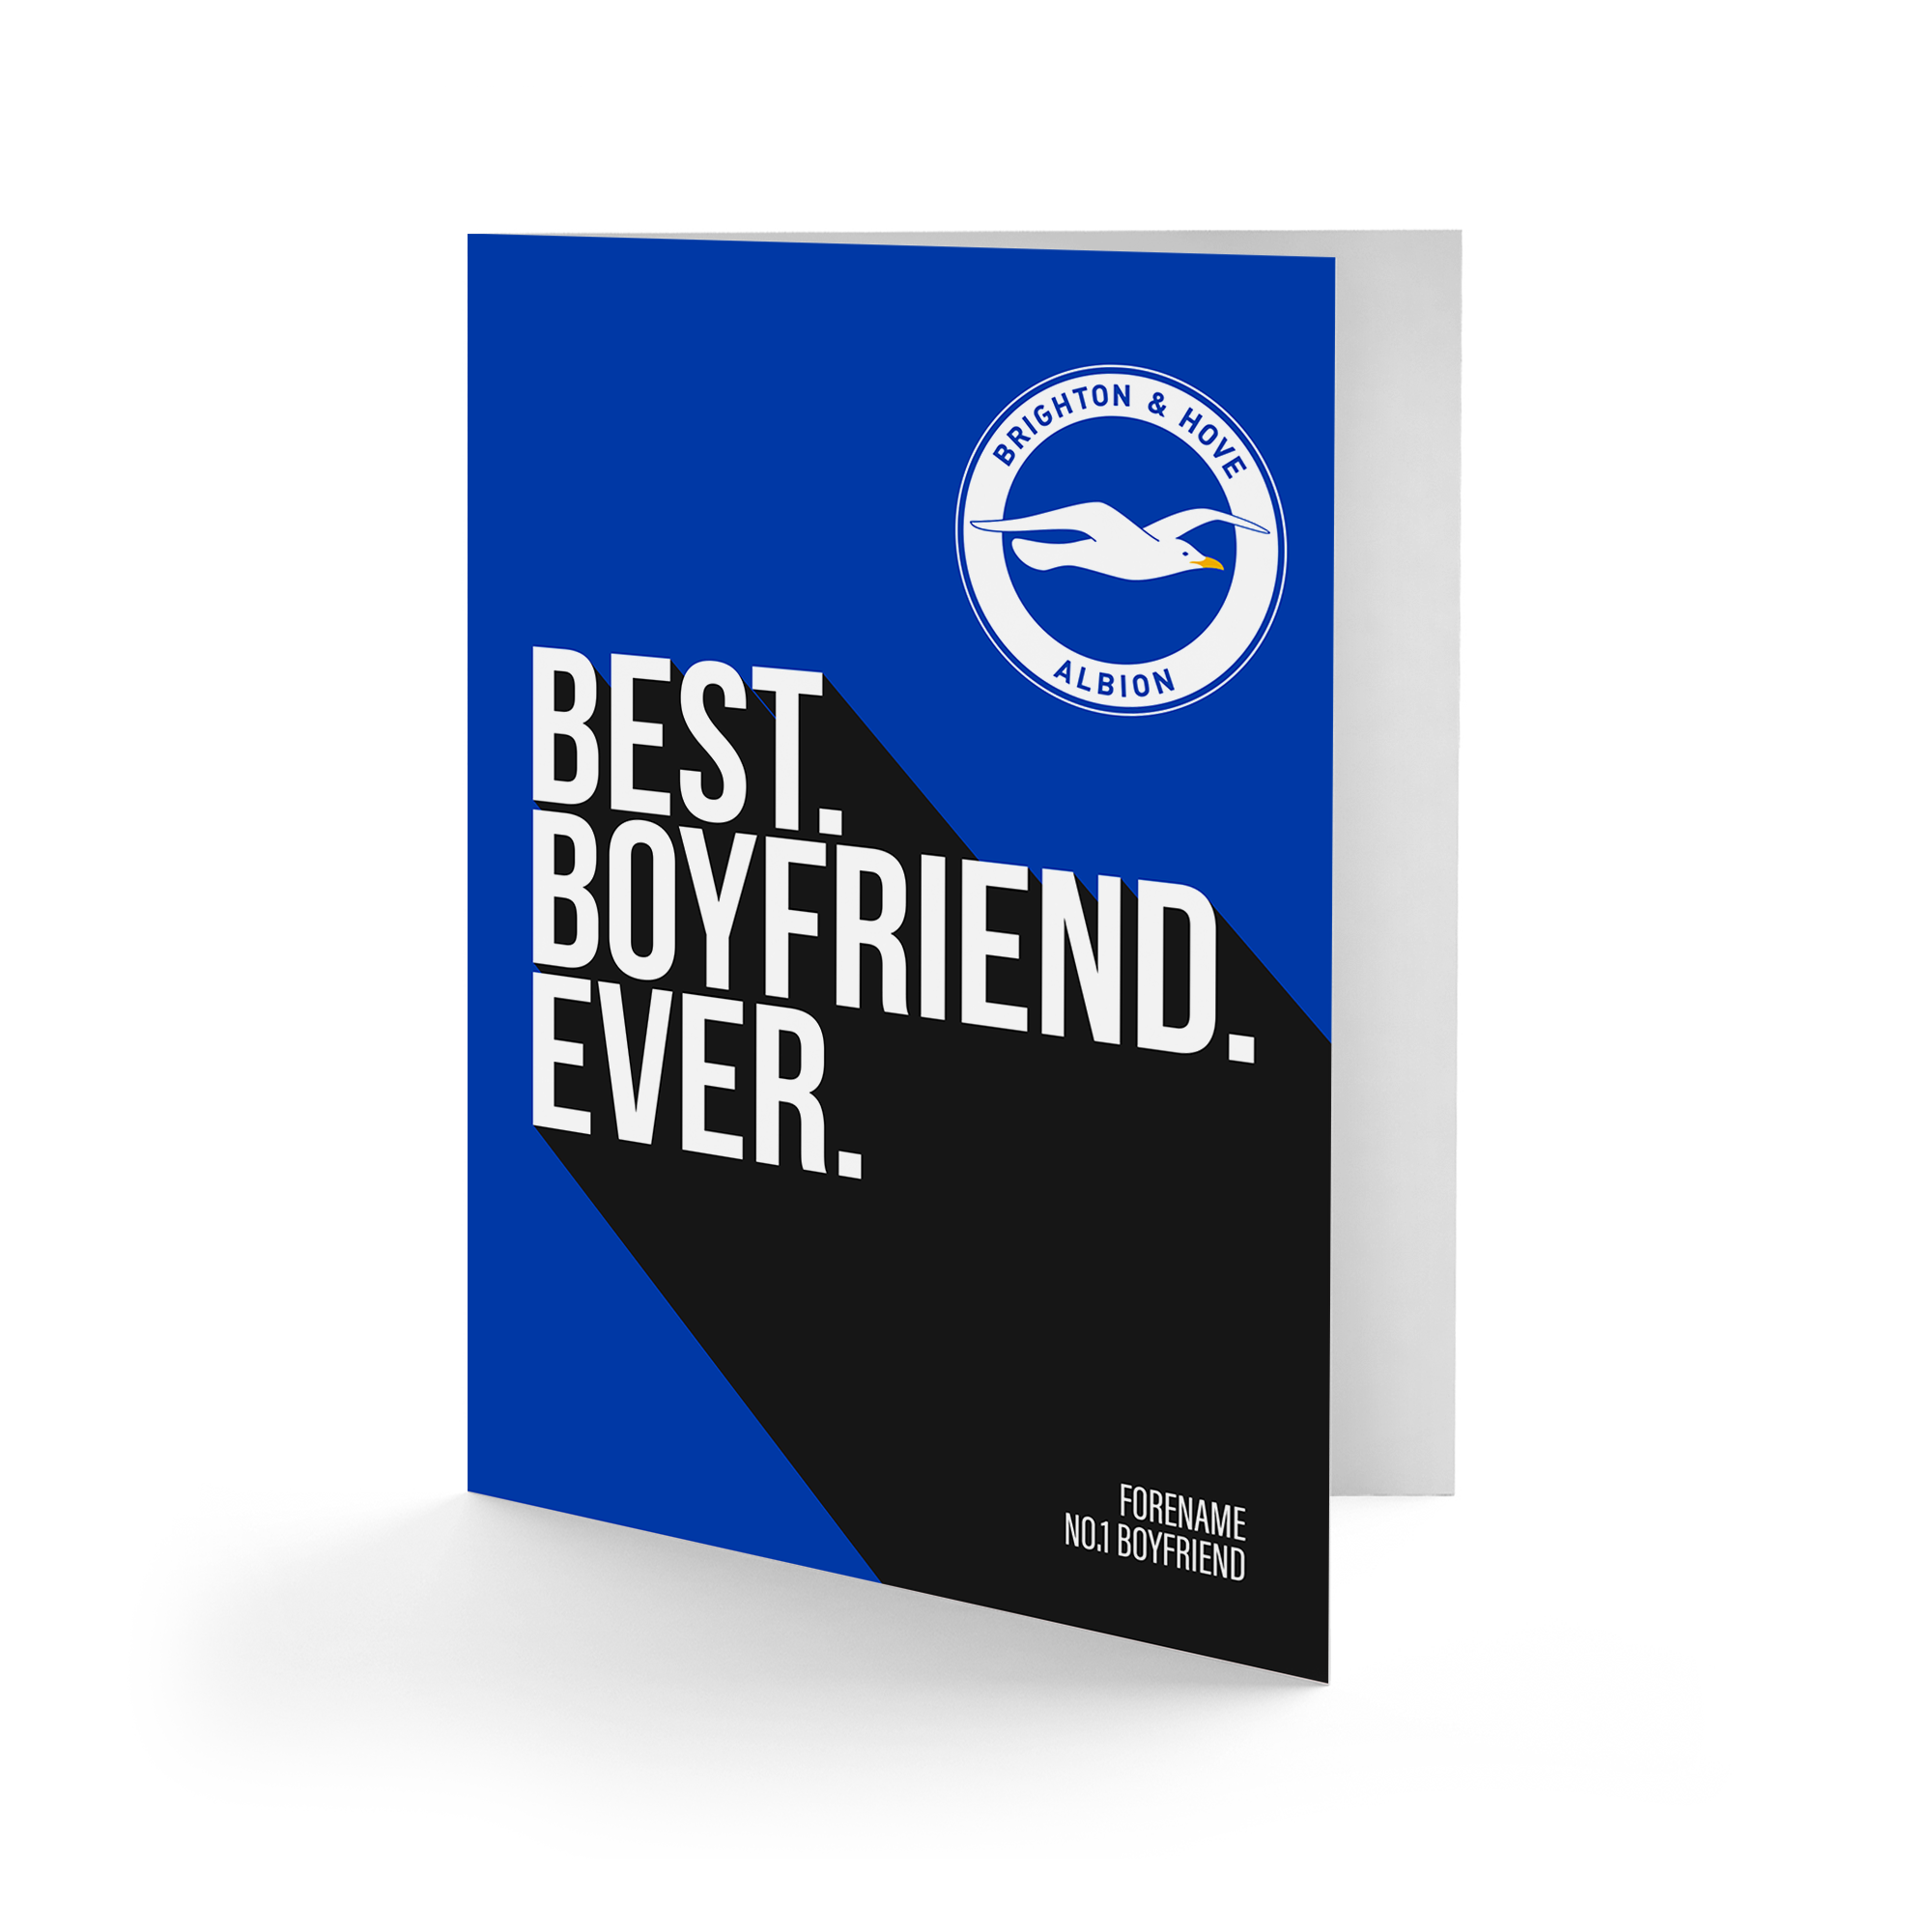 Brighton & Hove Albion FC Best Boyfriend Ever Card